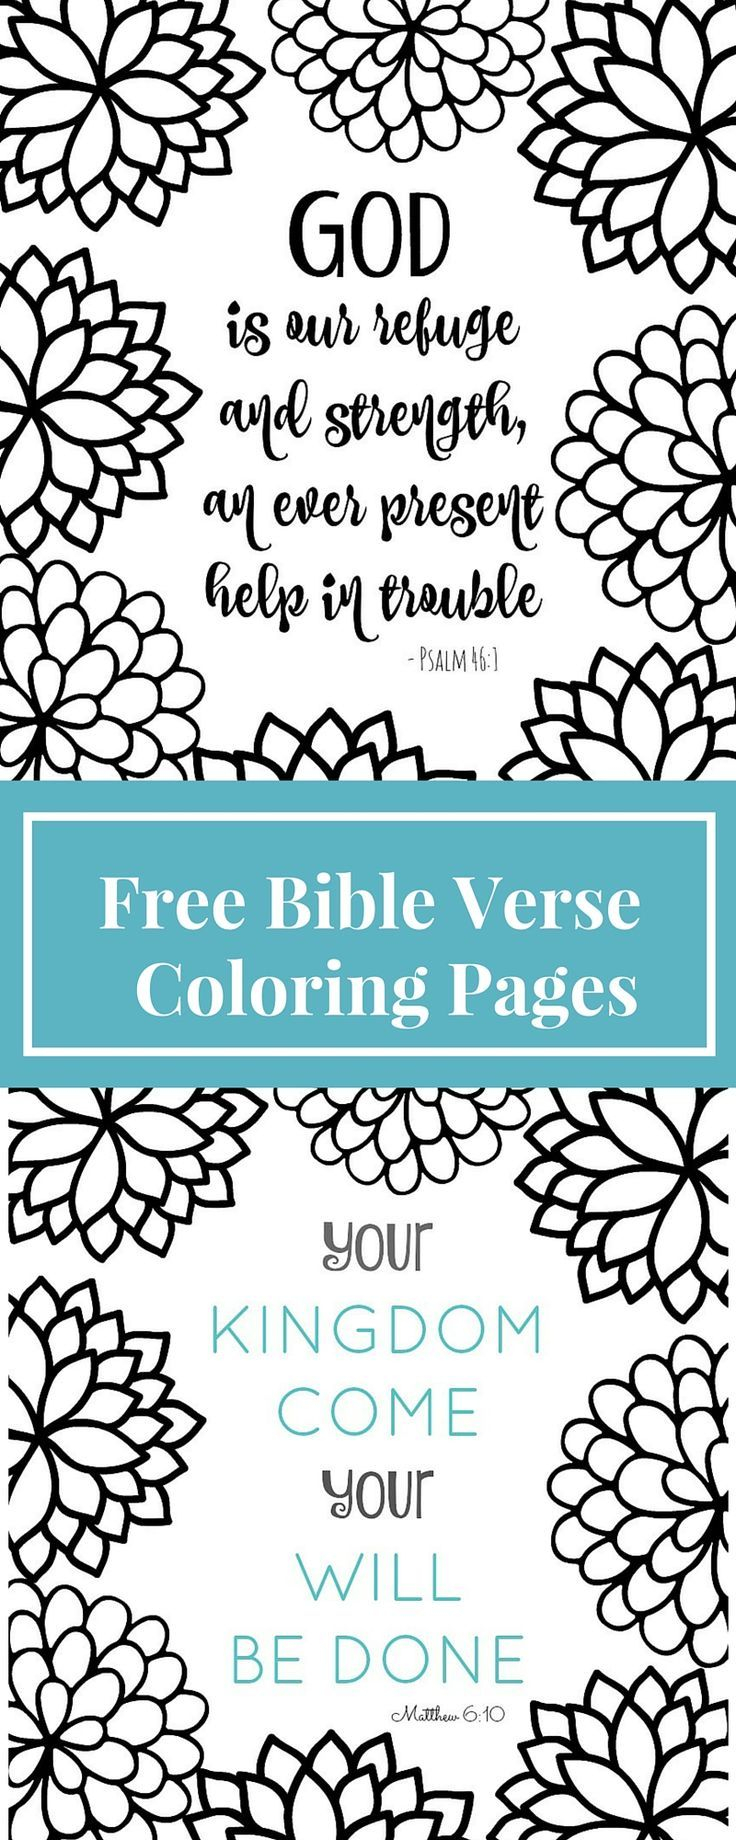 bible verse coloring pages free Download-Coloring pages are for grown ups now These Bible verse coloring page printables are fun & relaxing to color This blog has tons of free printable adult 15-h